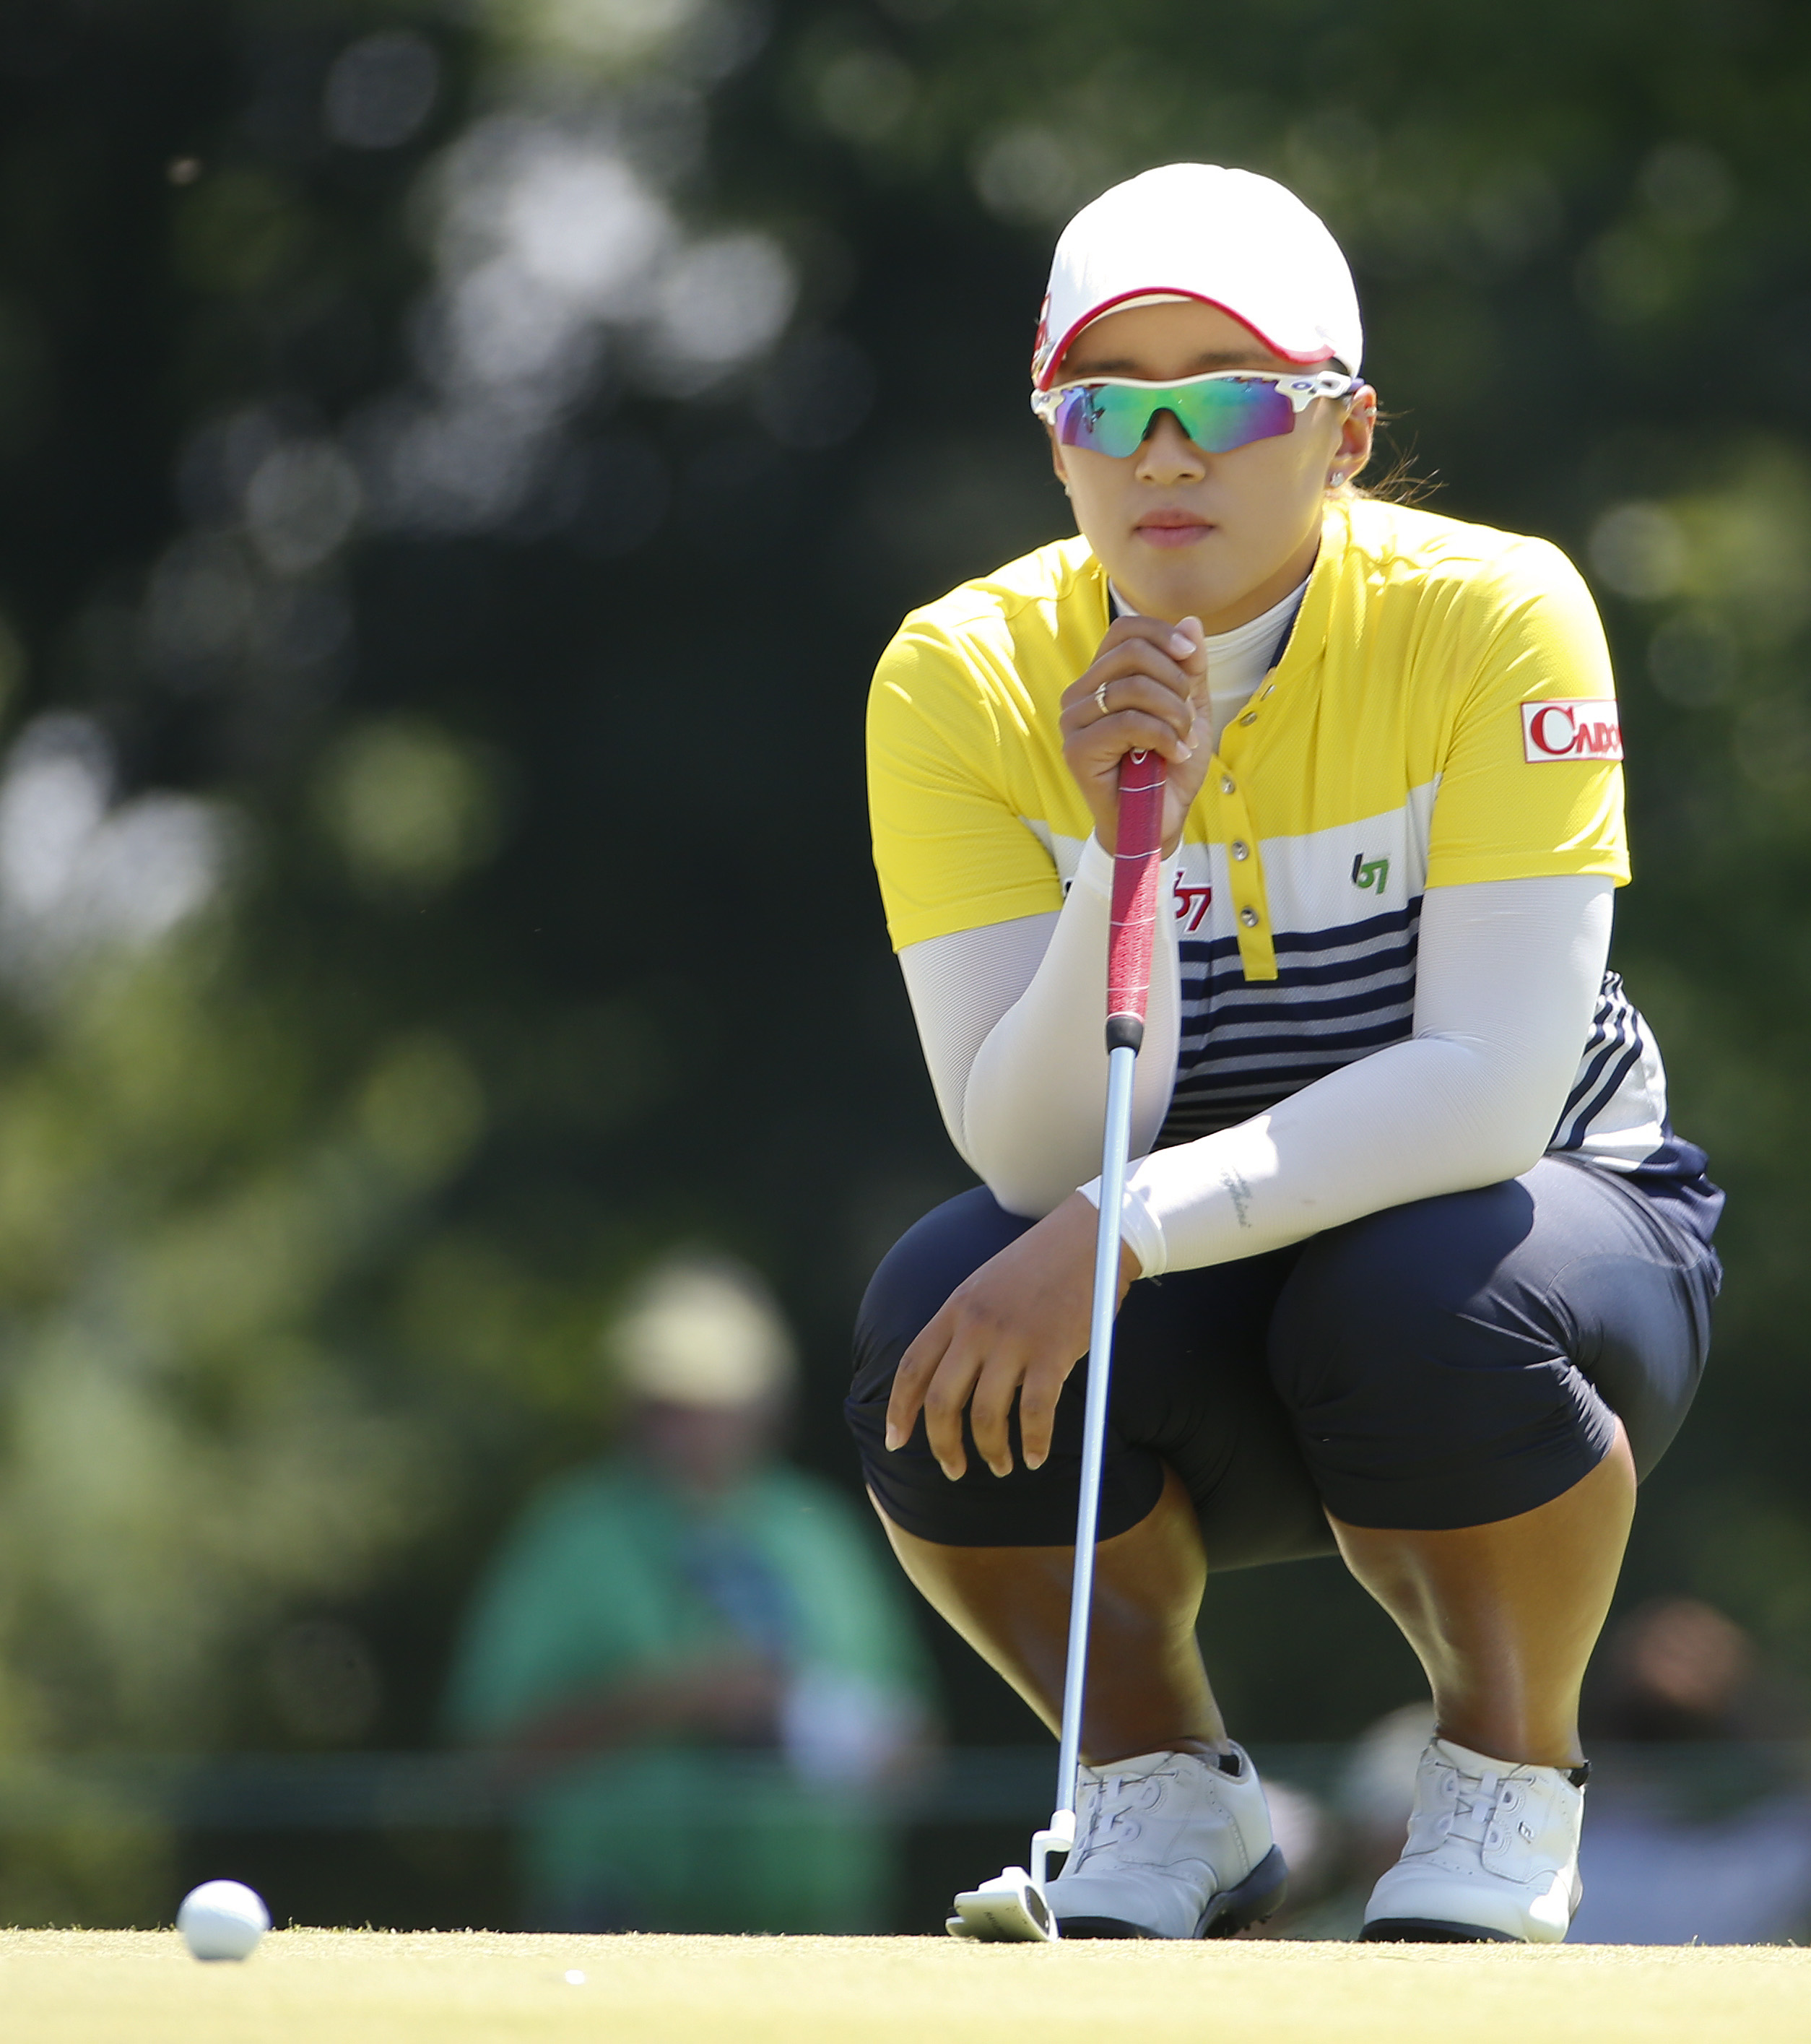 Amy Yang lines up a putt on the second green during the third round of the U.S. Women's Open golf tournament at Lancaster Country Club, Saturday, July 11, 2015 in Lancaster, Pa. (AP Photo/Gene J. Puskar)